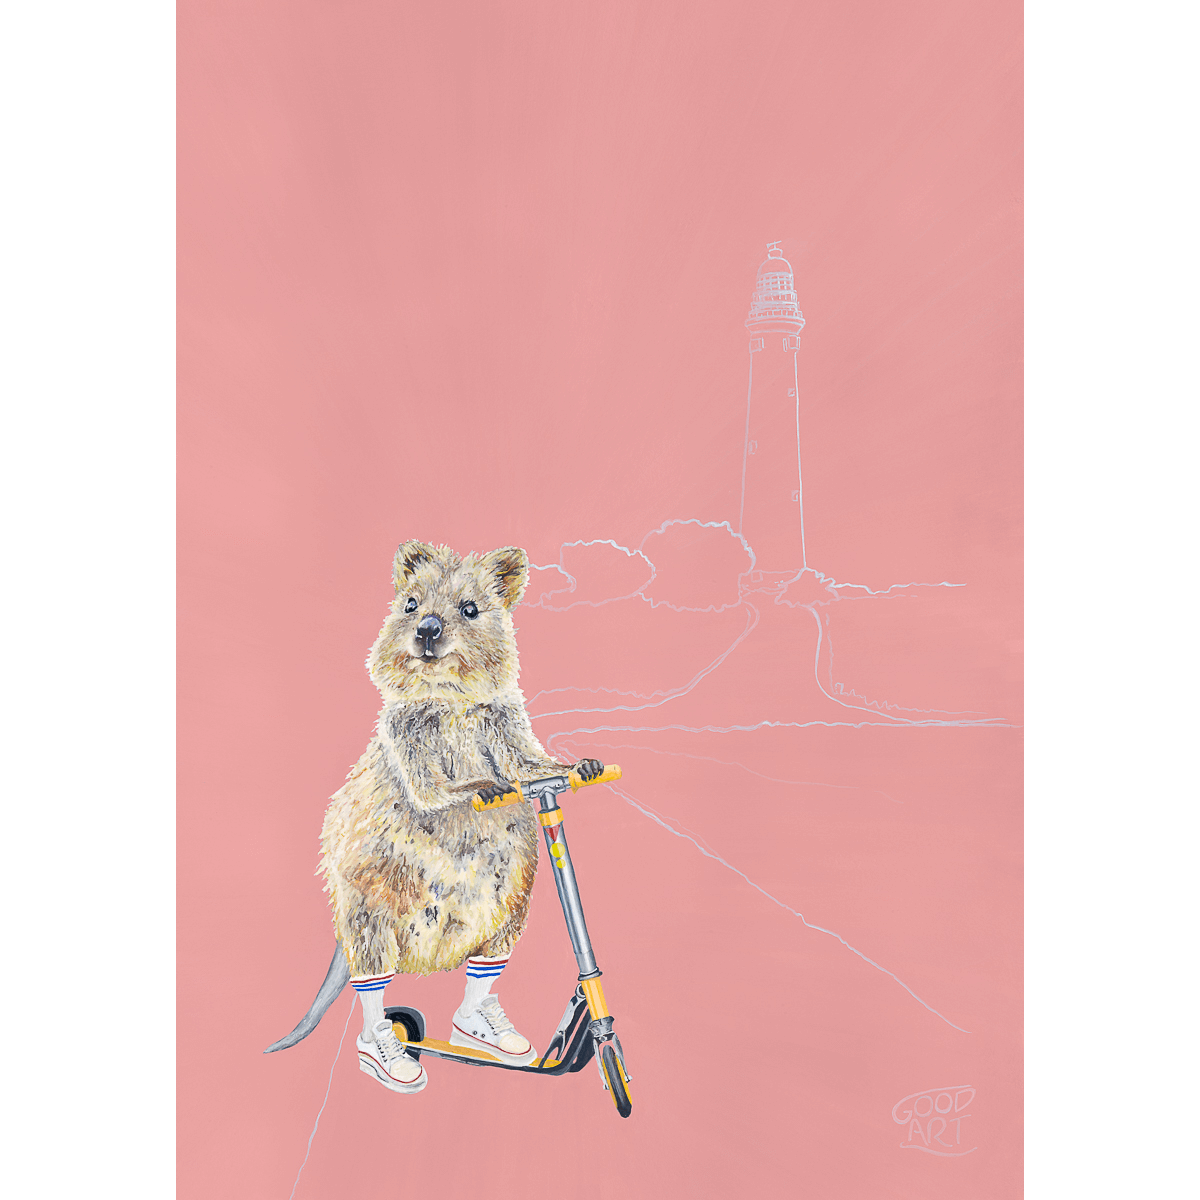 Wall art for a girls room of a cute Quokka riding a scooter. Painted by artist Jaelle Pedroli of Good Art Australia. The background colour is predominately blush.